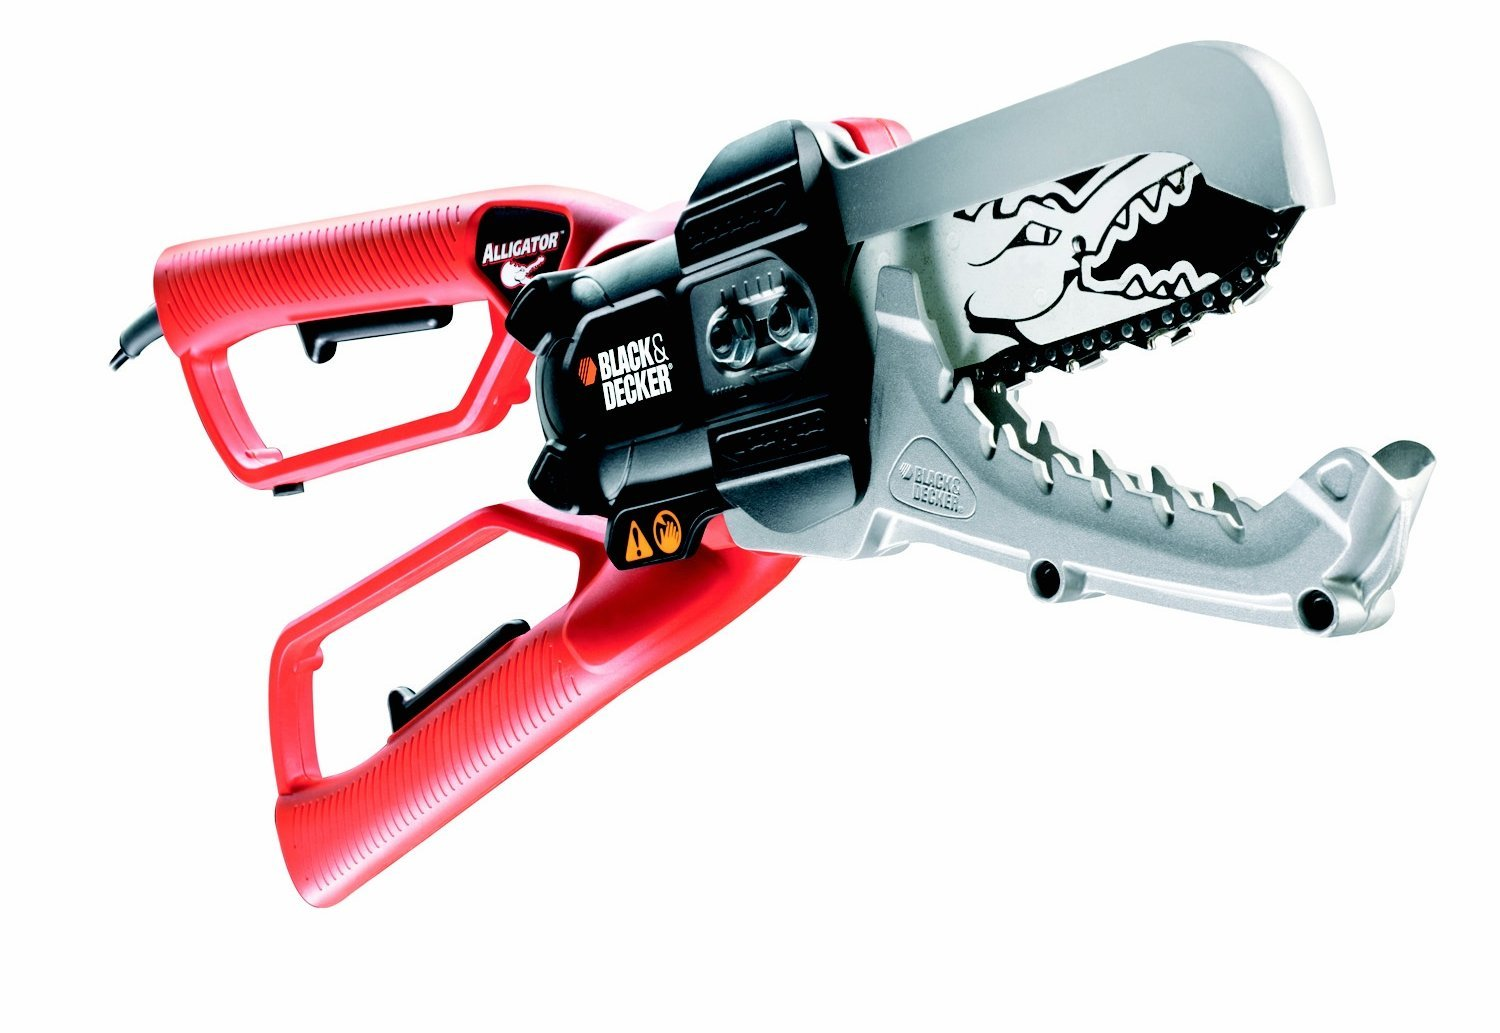 Black&Decker Chainsaw GK1000 orange GK1000